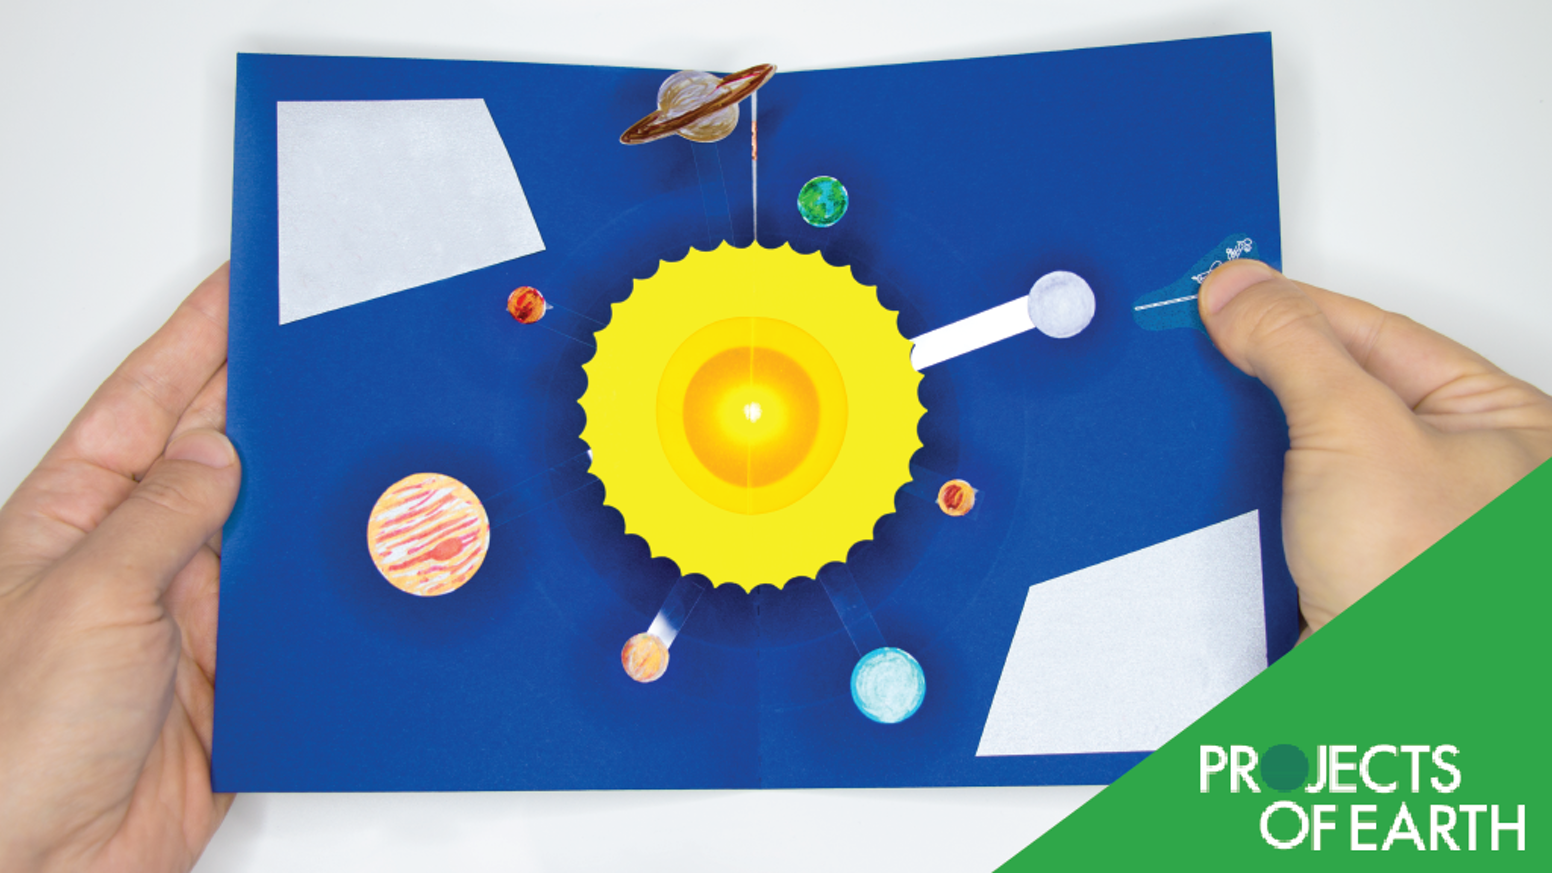 Learn to build a light-up pop-up card that models our solar system and illuminates the sun. A Projects of Earth tech-craft kit.